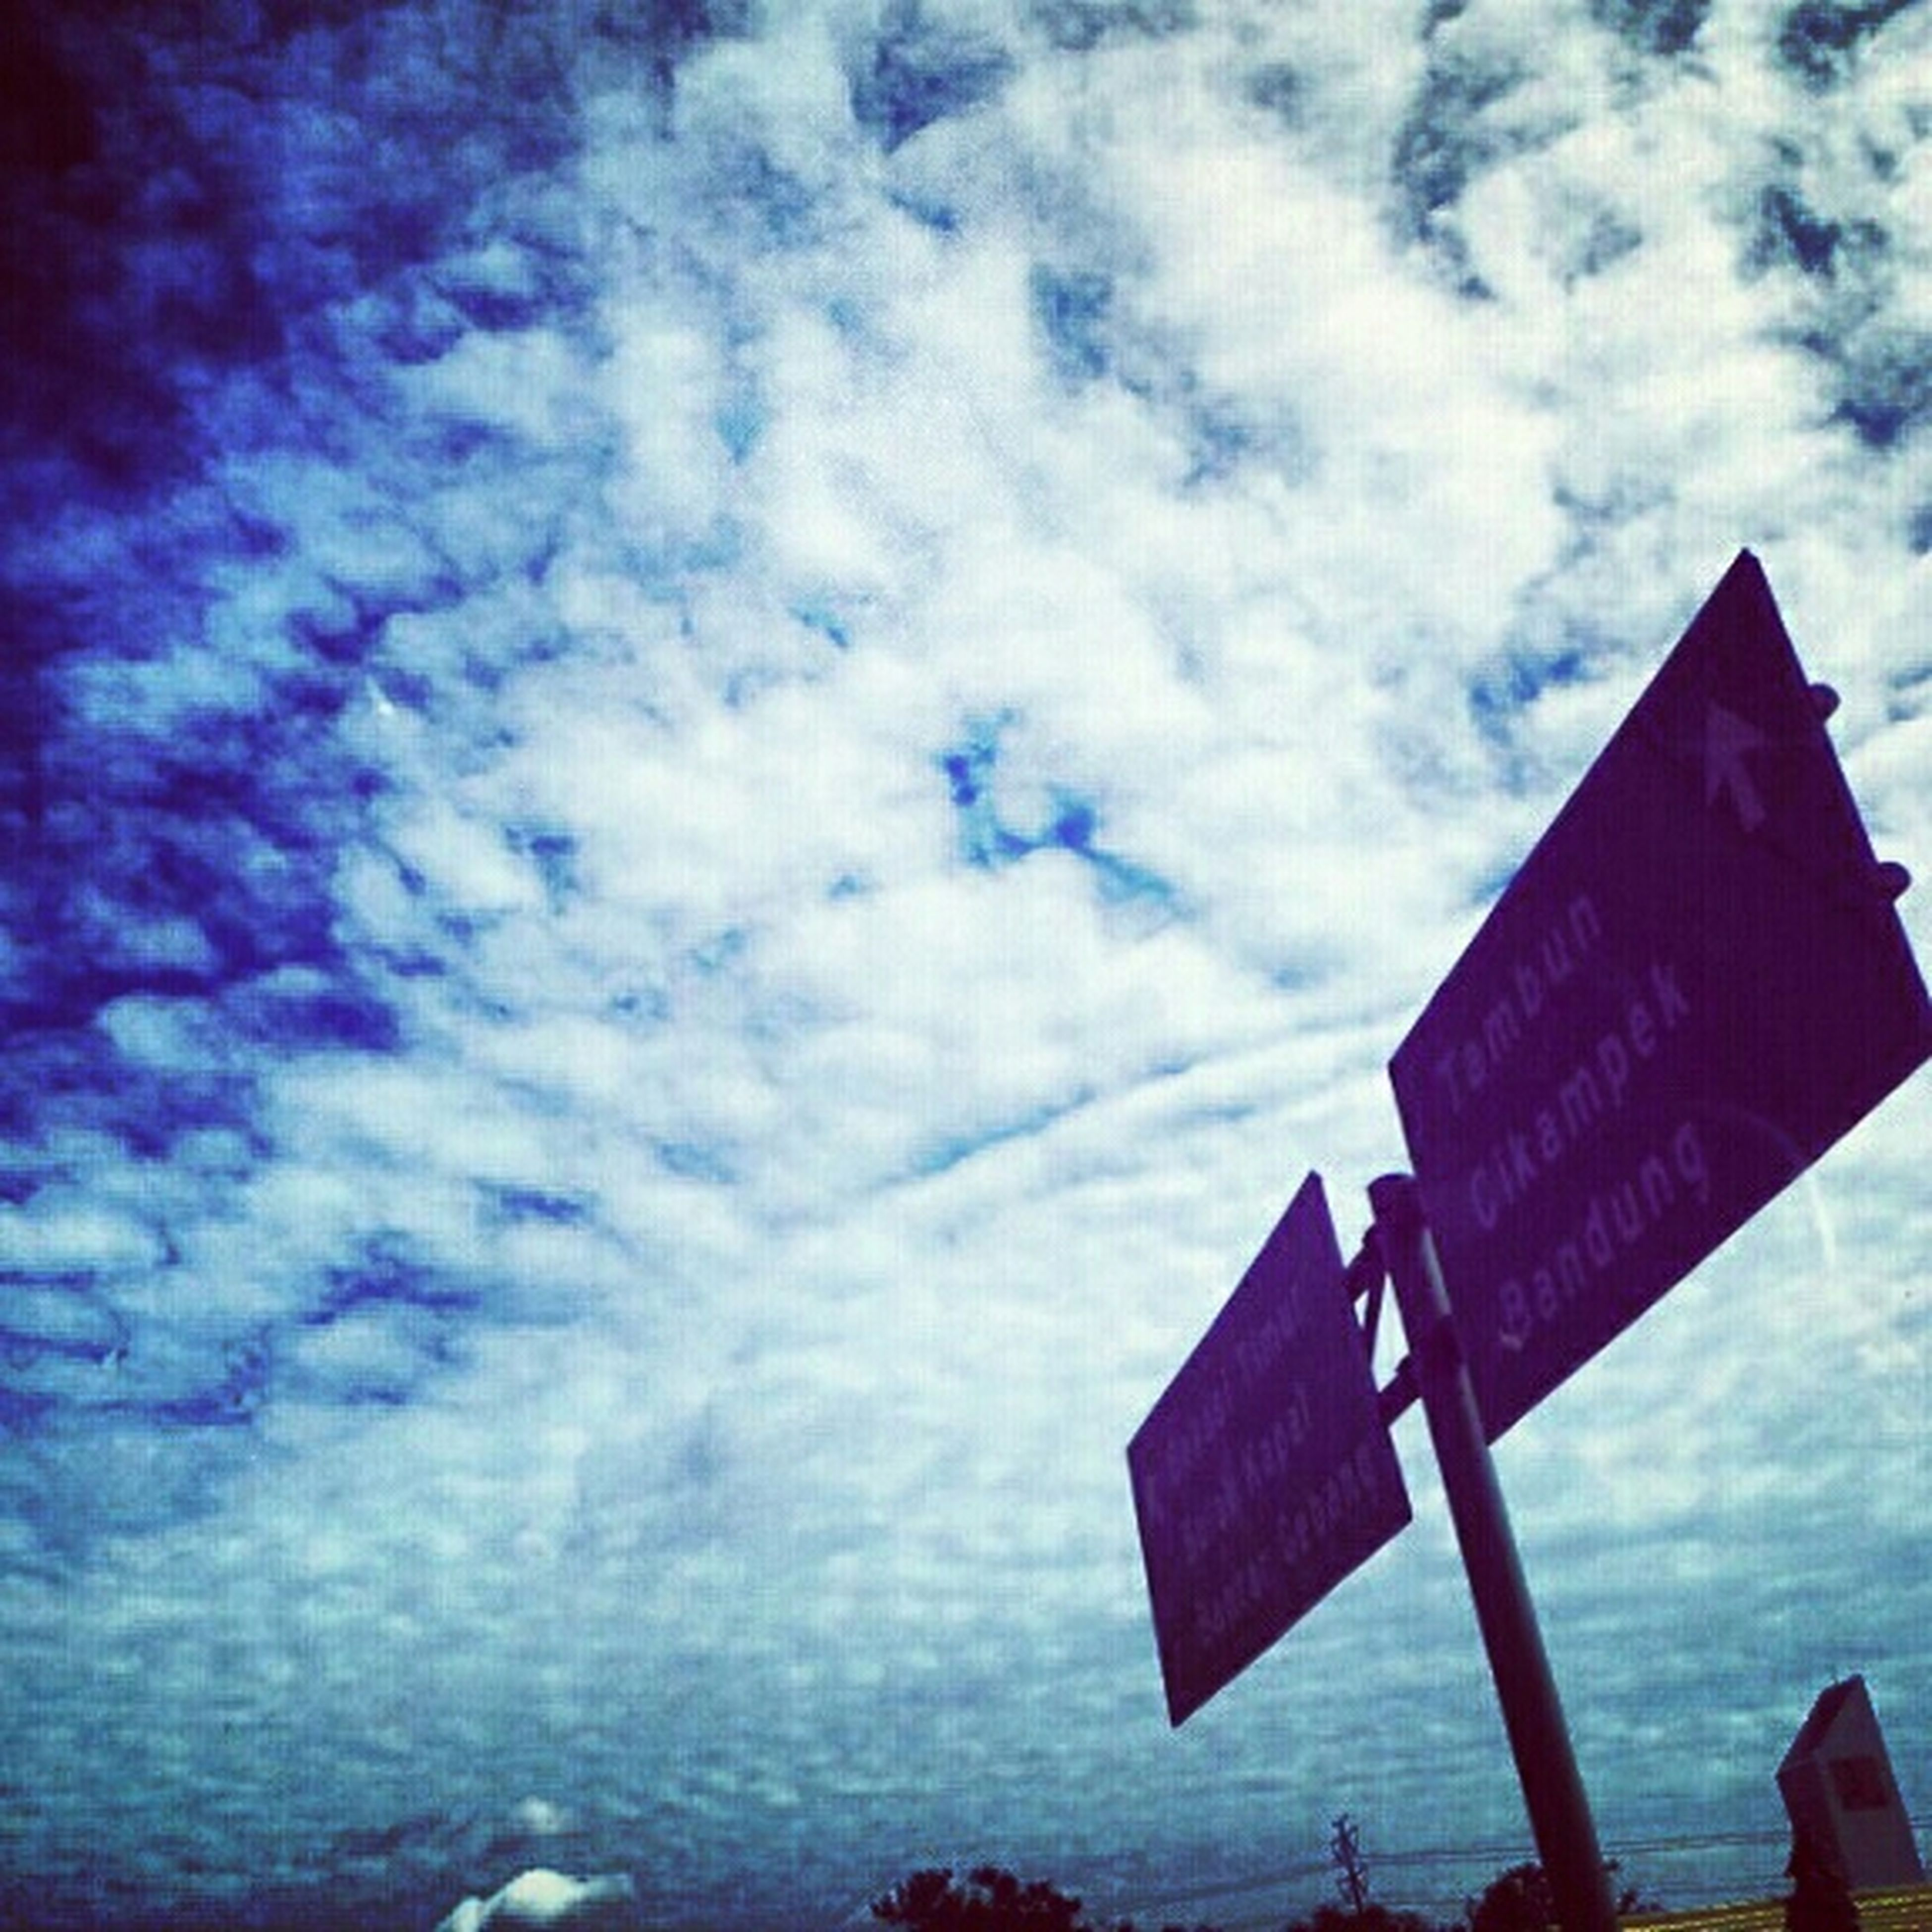 sky, guidance, text, communication, cloud - sky, western script, sign, information sign, cloud, cloudy, direction, low angle view, road sign, directional sign, blue, information, no people, weather, nature, day